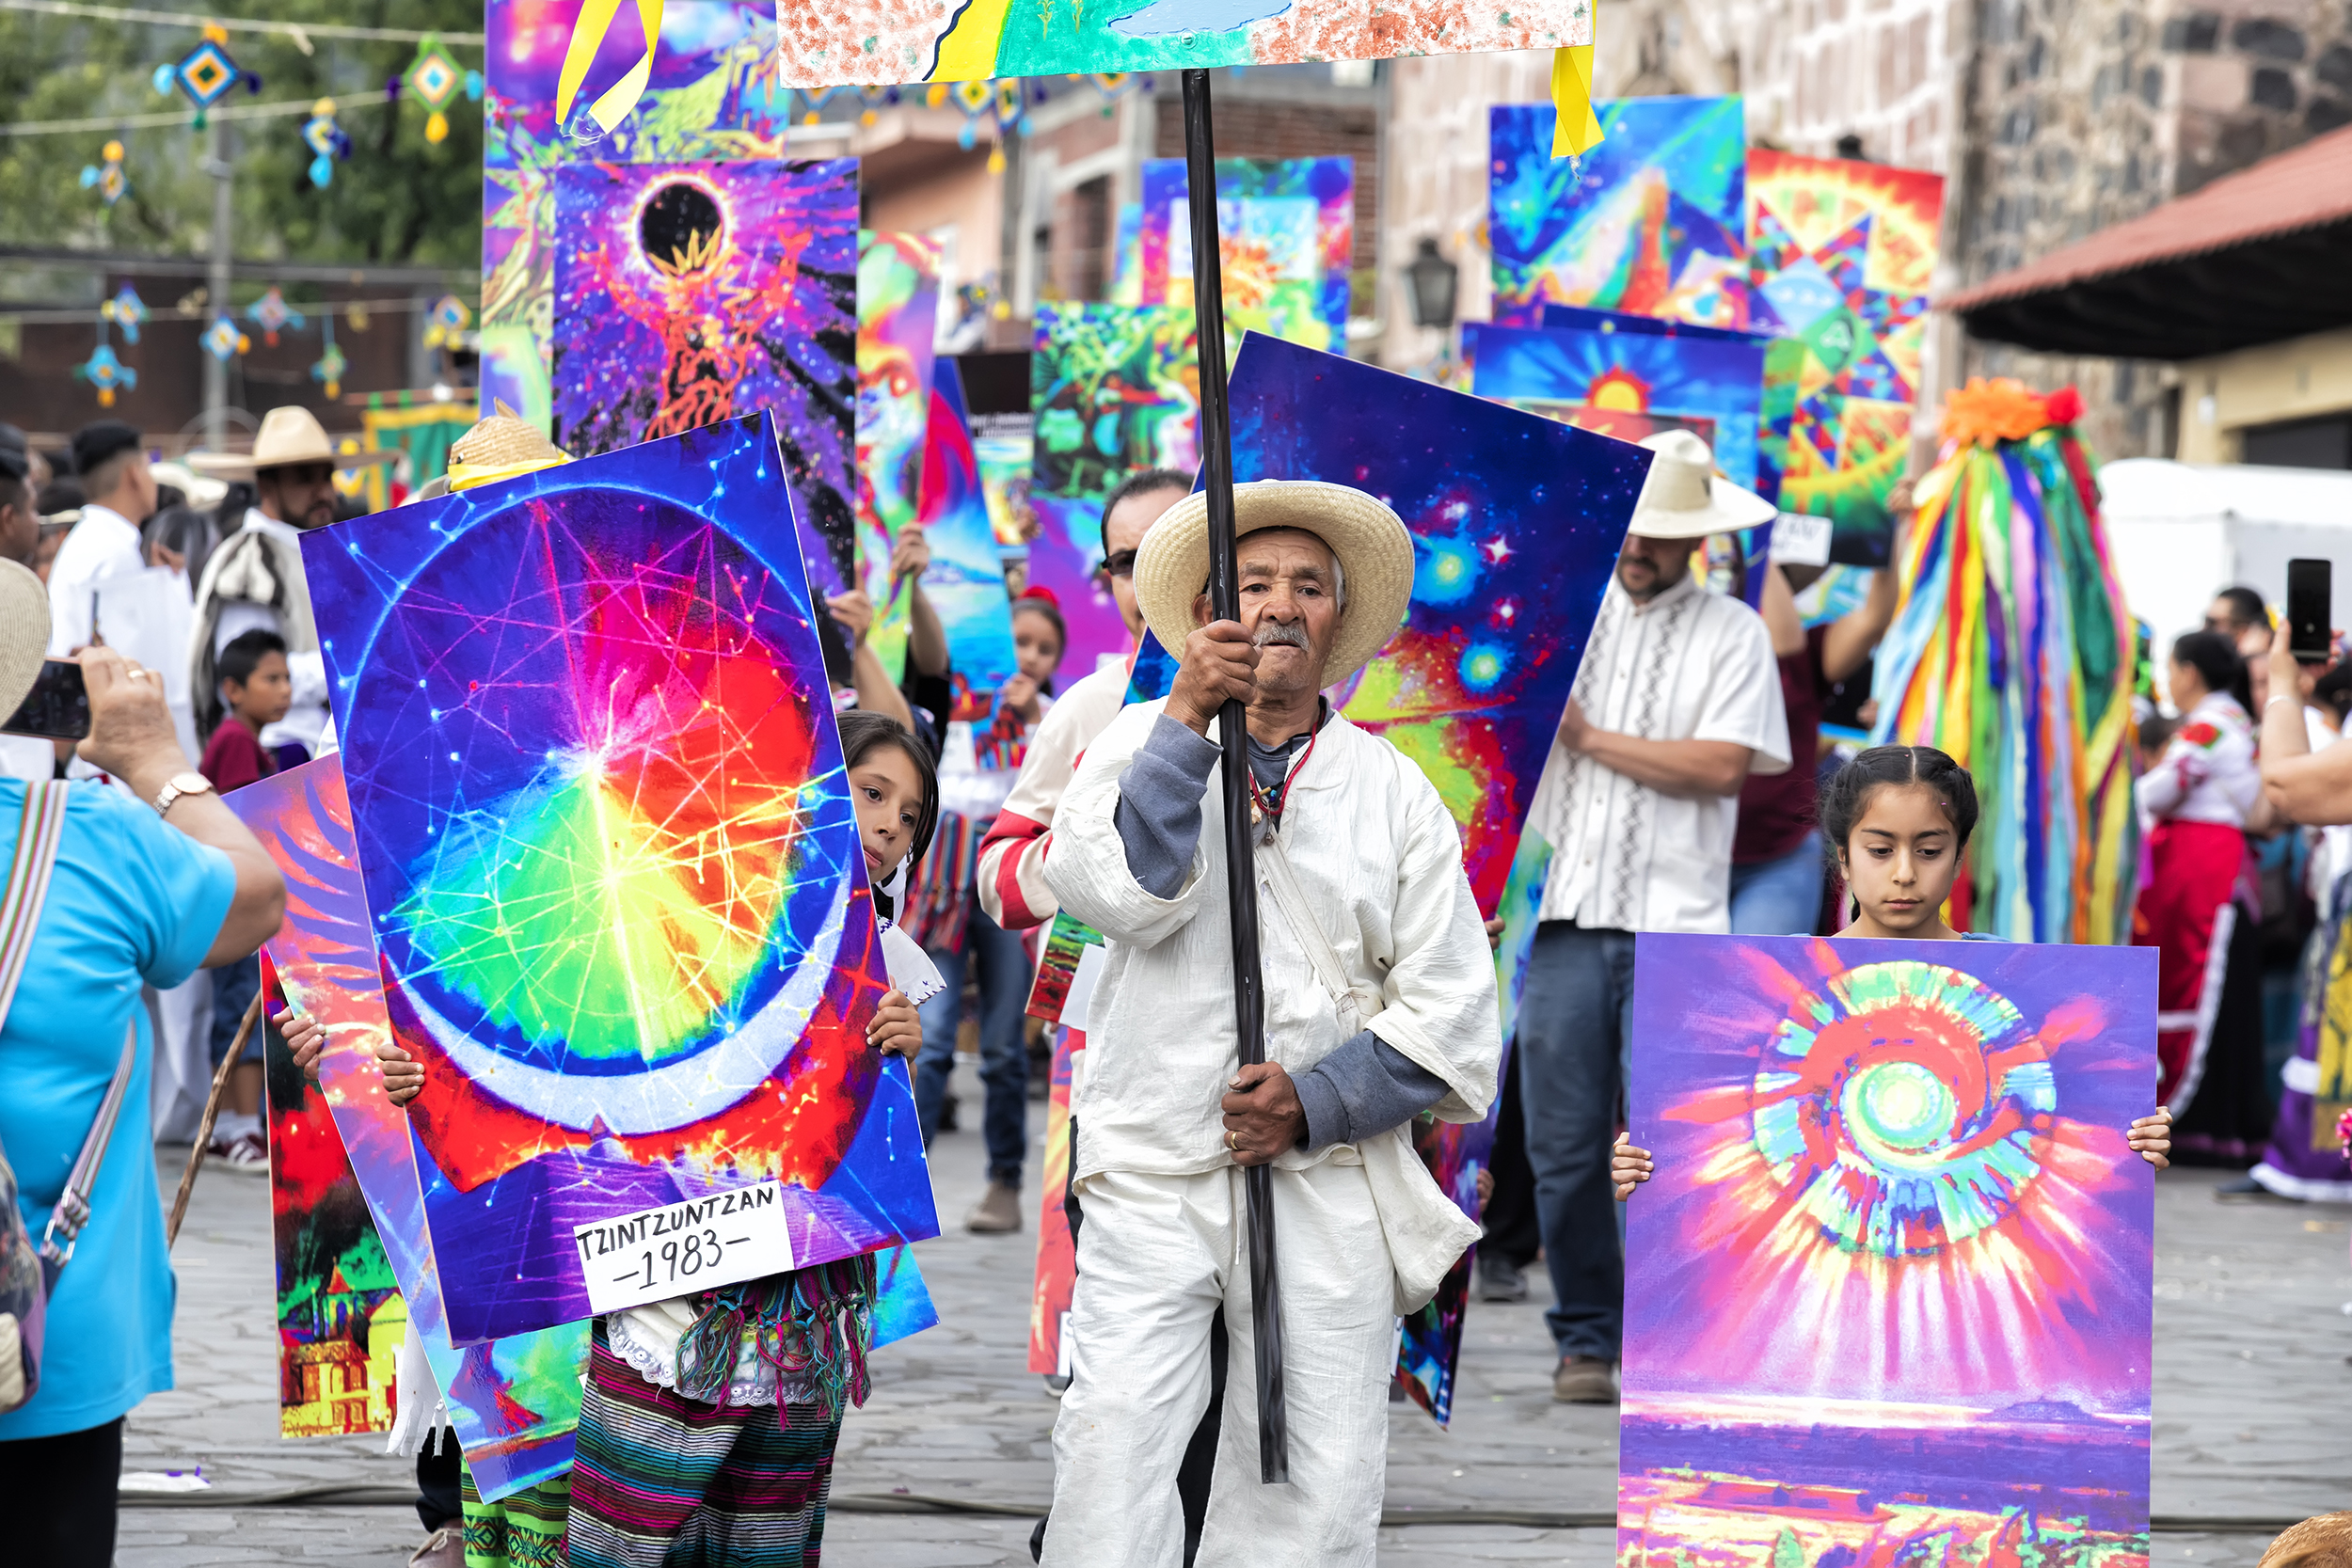 an elderly man and two young girls hold colorful signs while walking down a street in Mexico